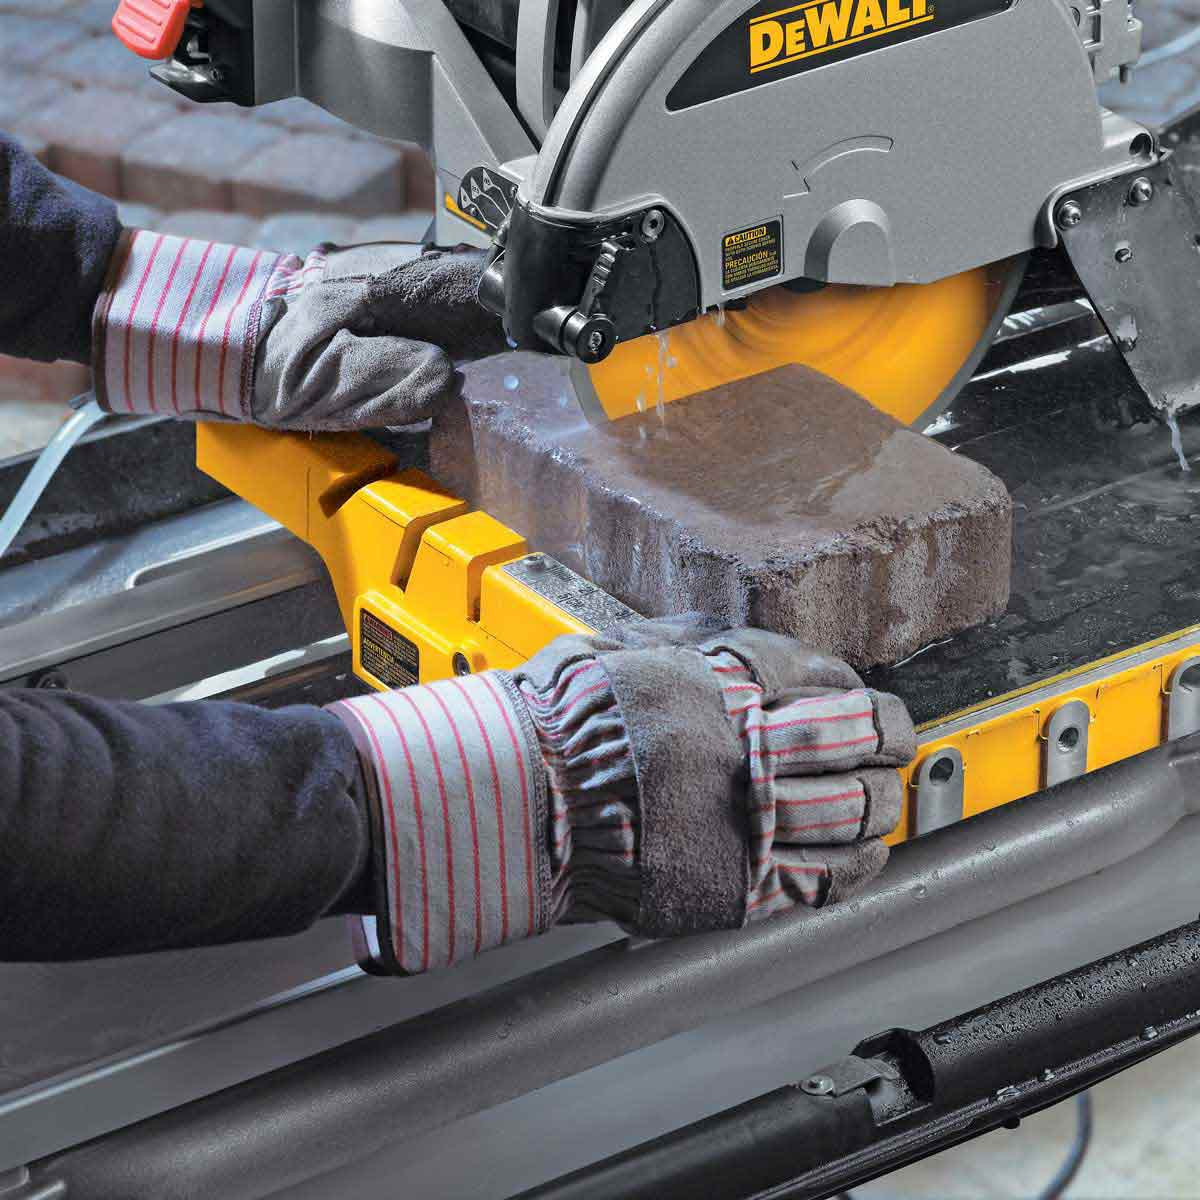 dewalt d24000 tile saw brick cut